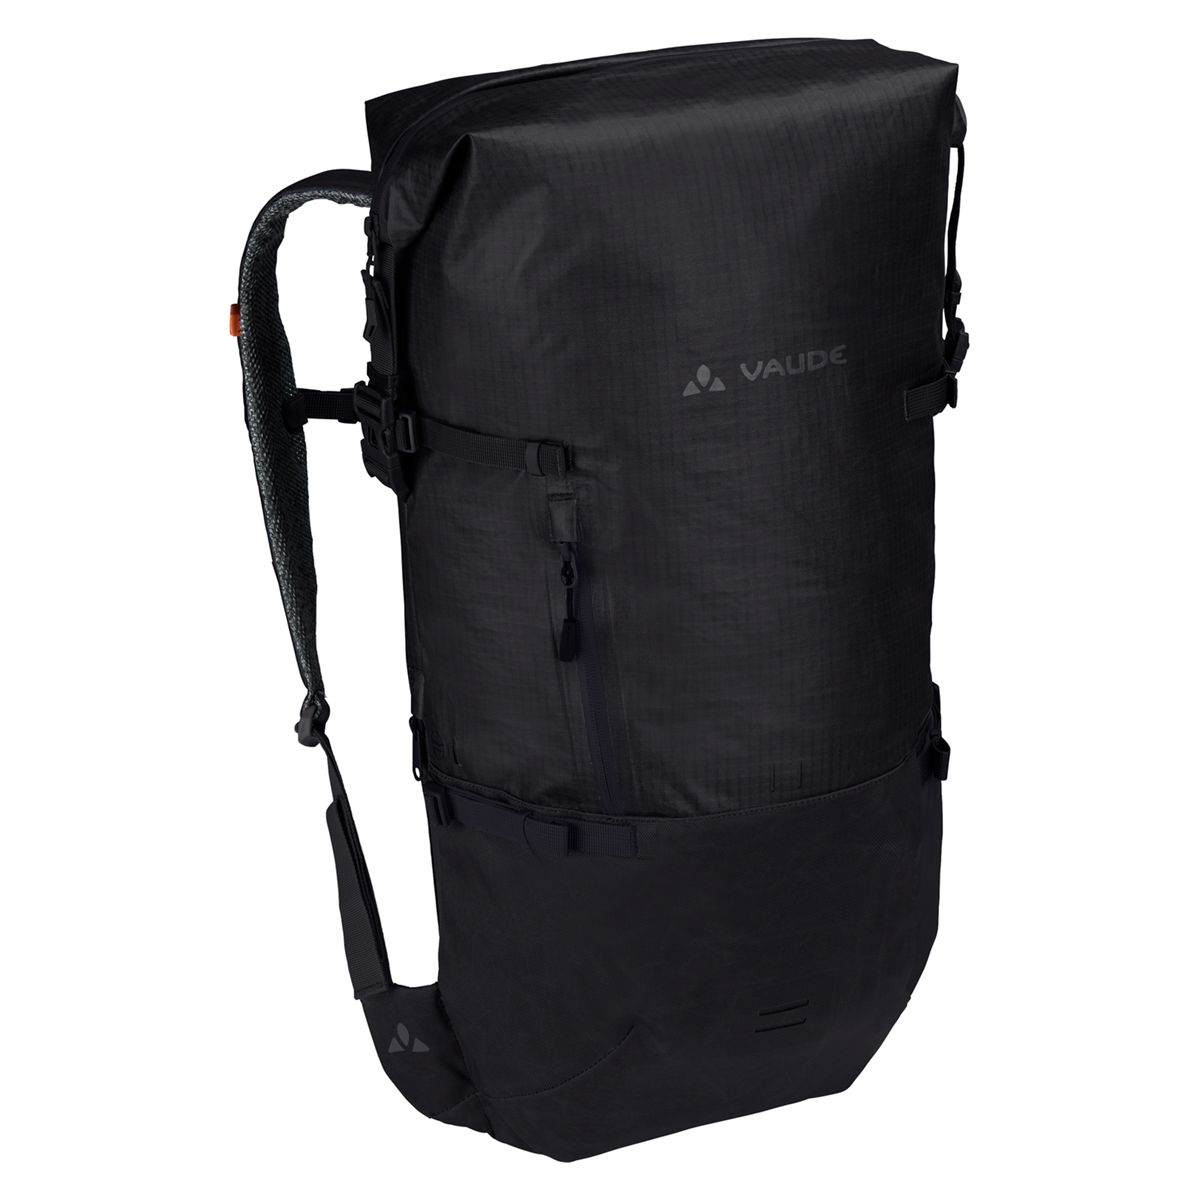 CITYGO 23 Bike Backpack